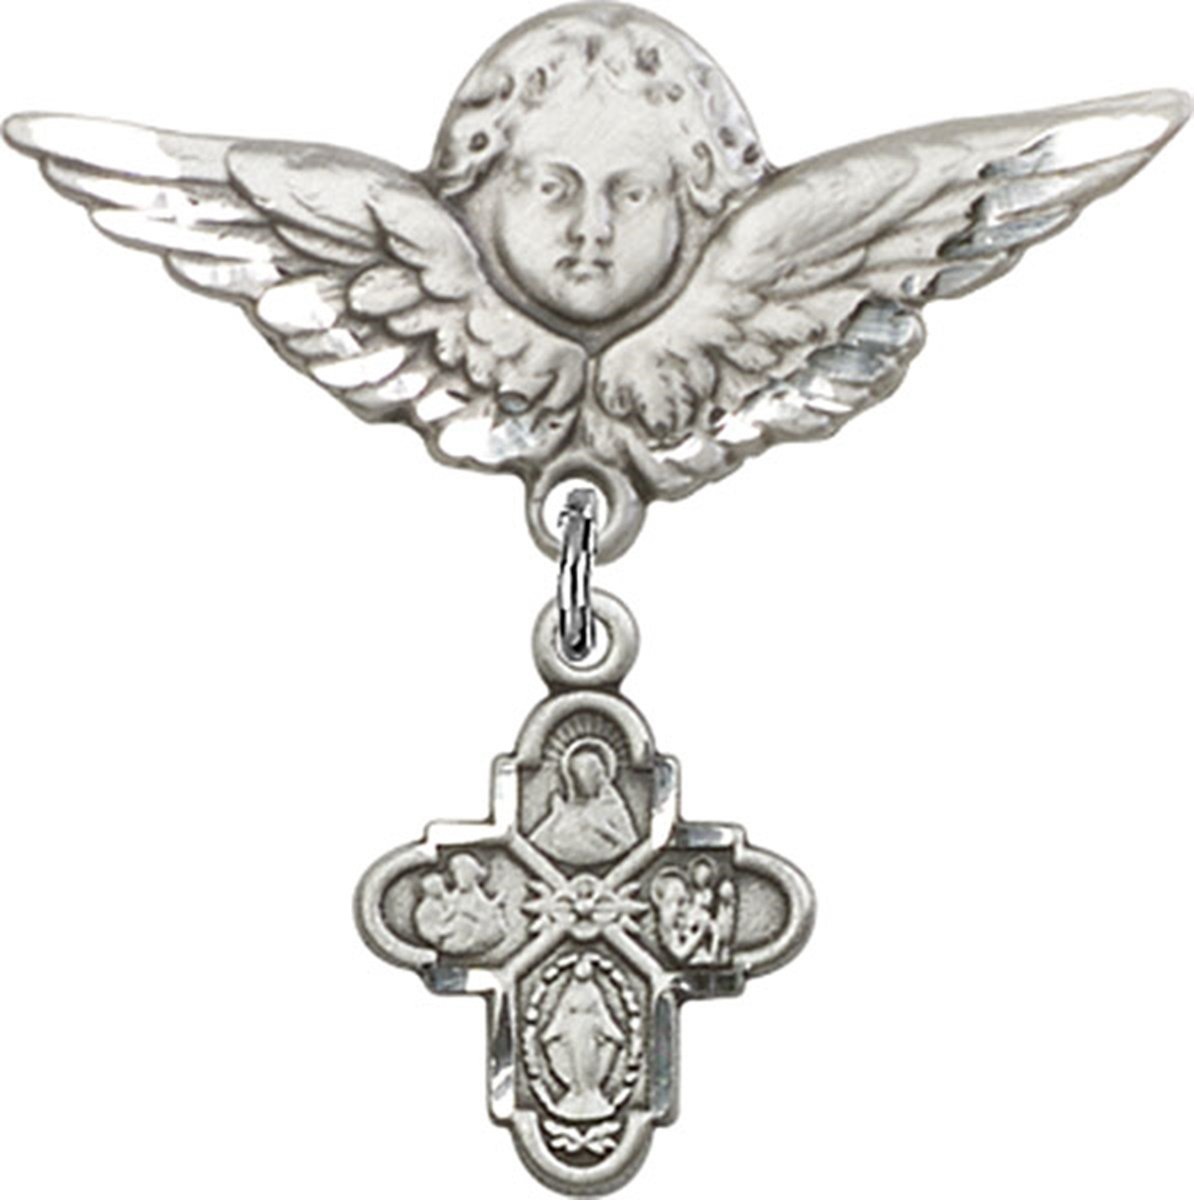 Sterling Silver Baby Badge Guardian Angel Pin with 4-Way Charm, 1 1/4 Inch